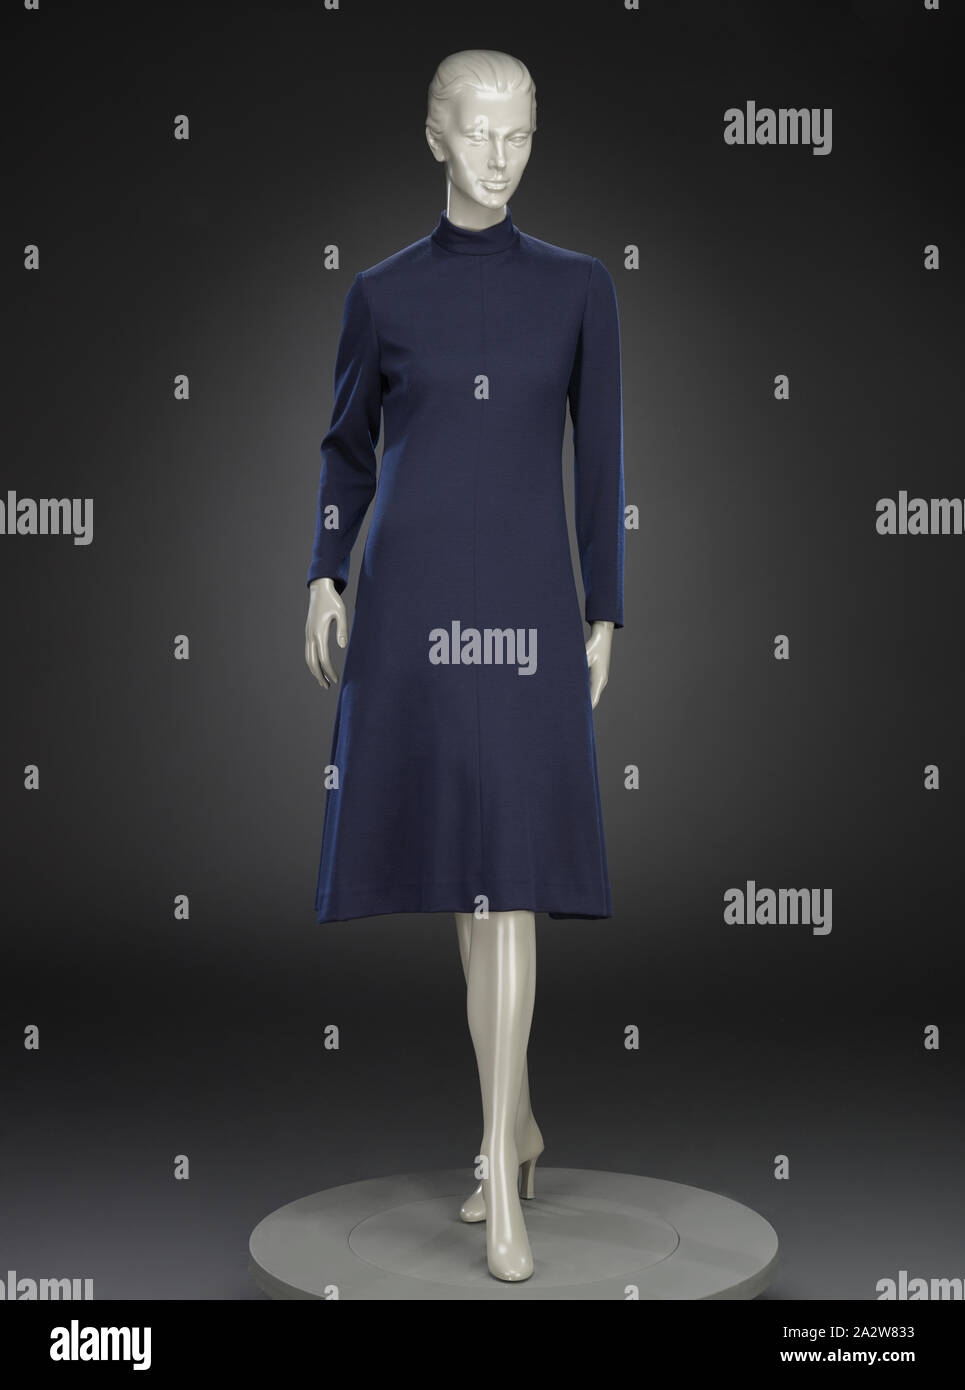 dress, Adele Simpson, Designer (American, 1904-1995), L. Strauss and Company, Retailer (American), 1970s, wool, center back 44-1/2 in., center front 43-1/2 in., bust 32 in., waist 29 in., hips 35 in., sleeve length 23 in., shoulders 16 in., Label, sewn: ADELE SIMPSON Label, sewn: L. Strauss, INDIANAPOLIS, Textile and Fashion Arts Stock Photo